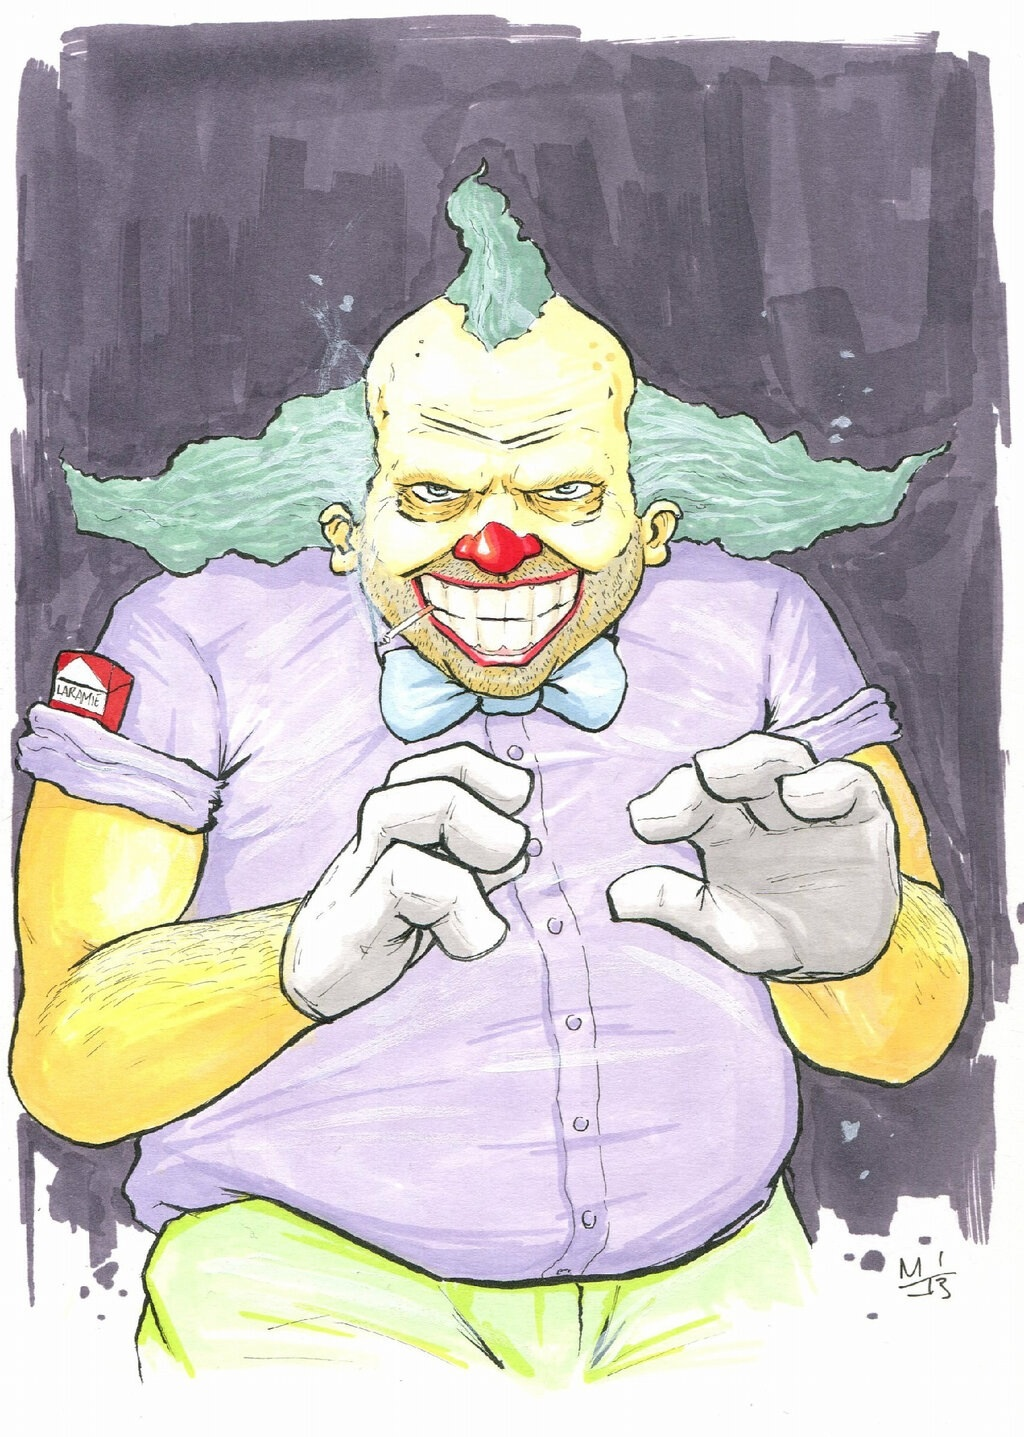 Krusty The Clown by MikimusPrime